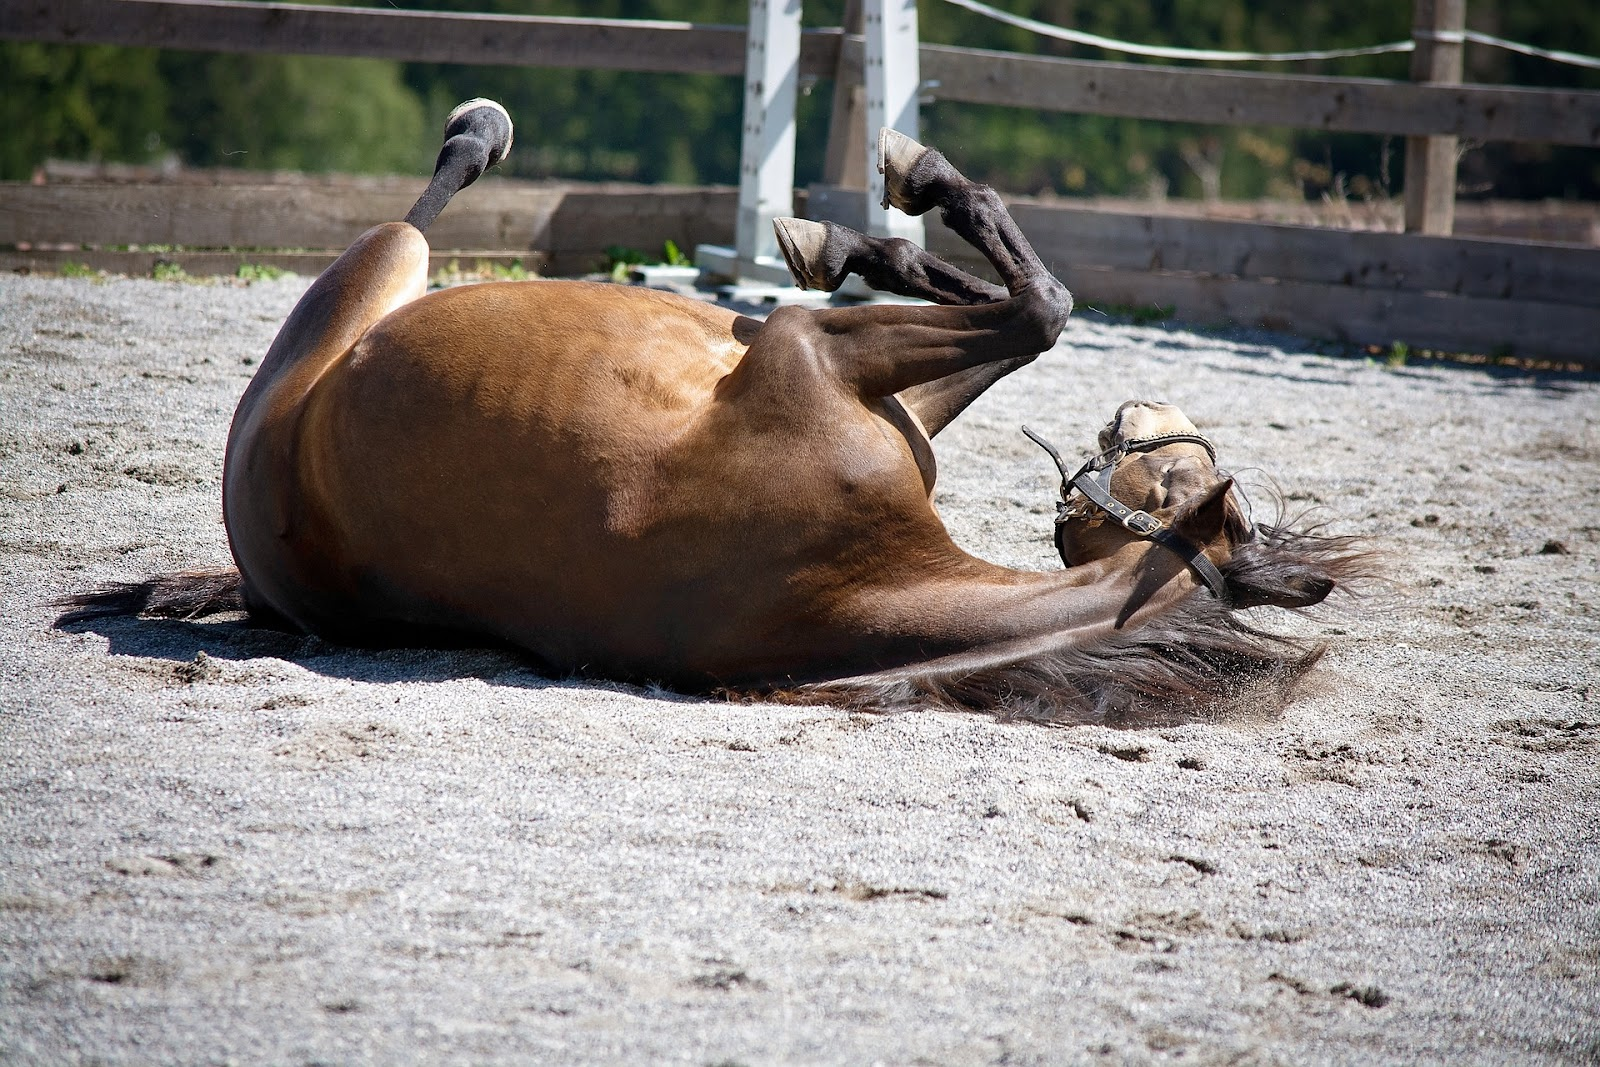 A bay horse rolls in a sand ring